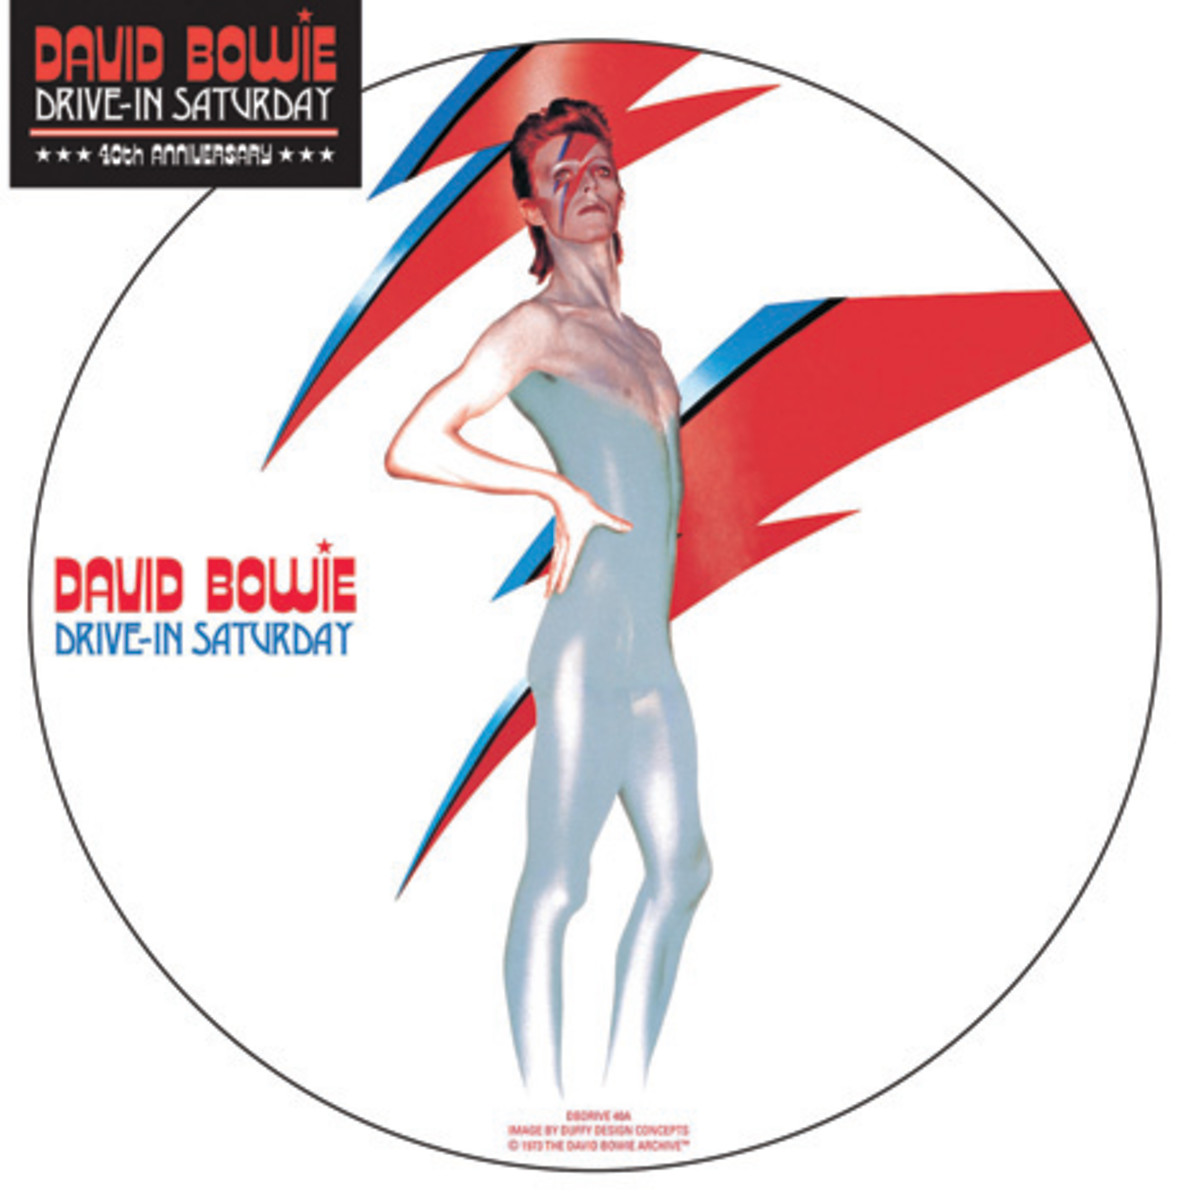 David Bowie Drive In Saturday picture disc 40th anniversary